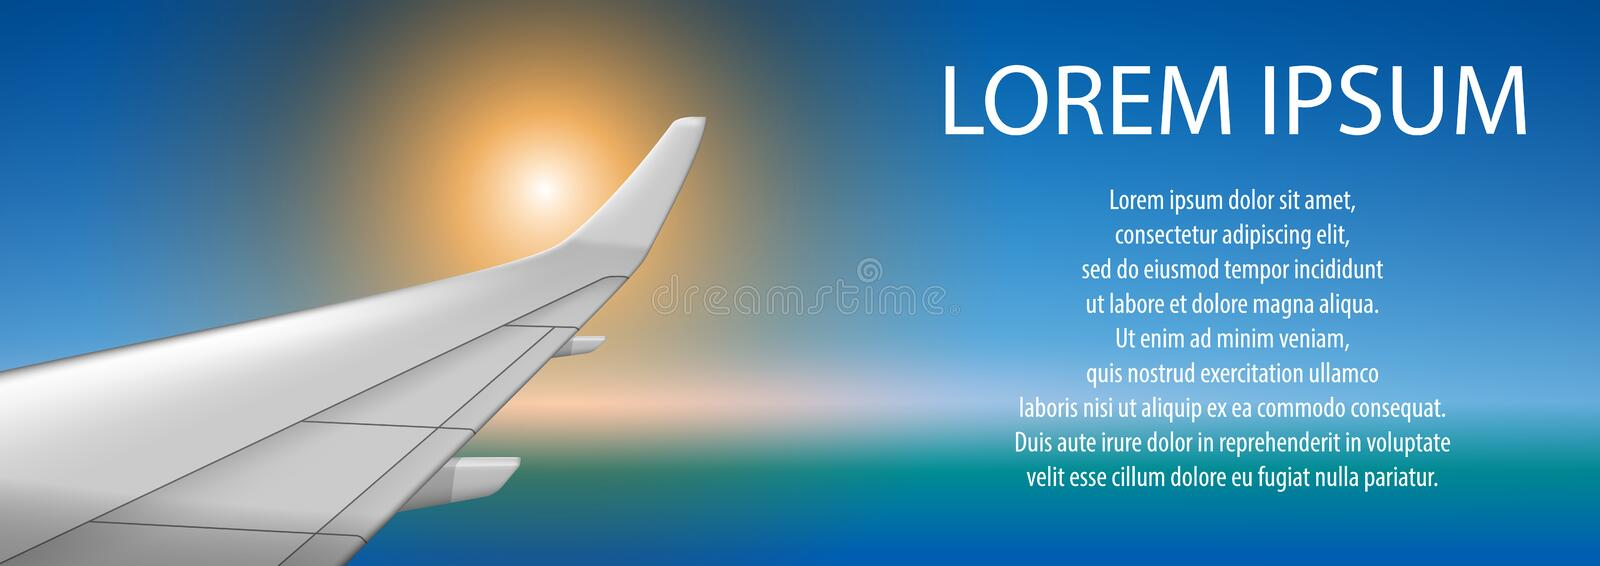 Download Banner Of A Plane Wing On Sunset Brochure In Tourism Theme Travel Agency